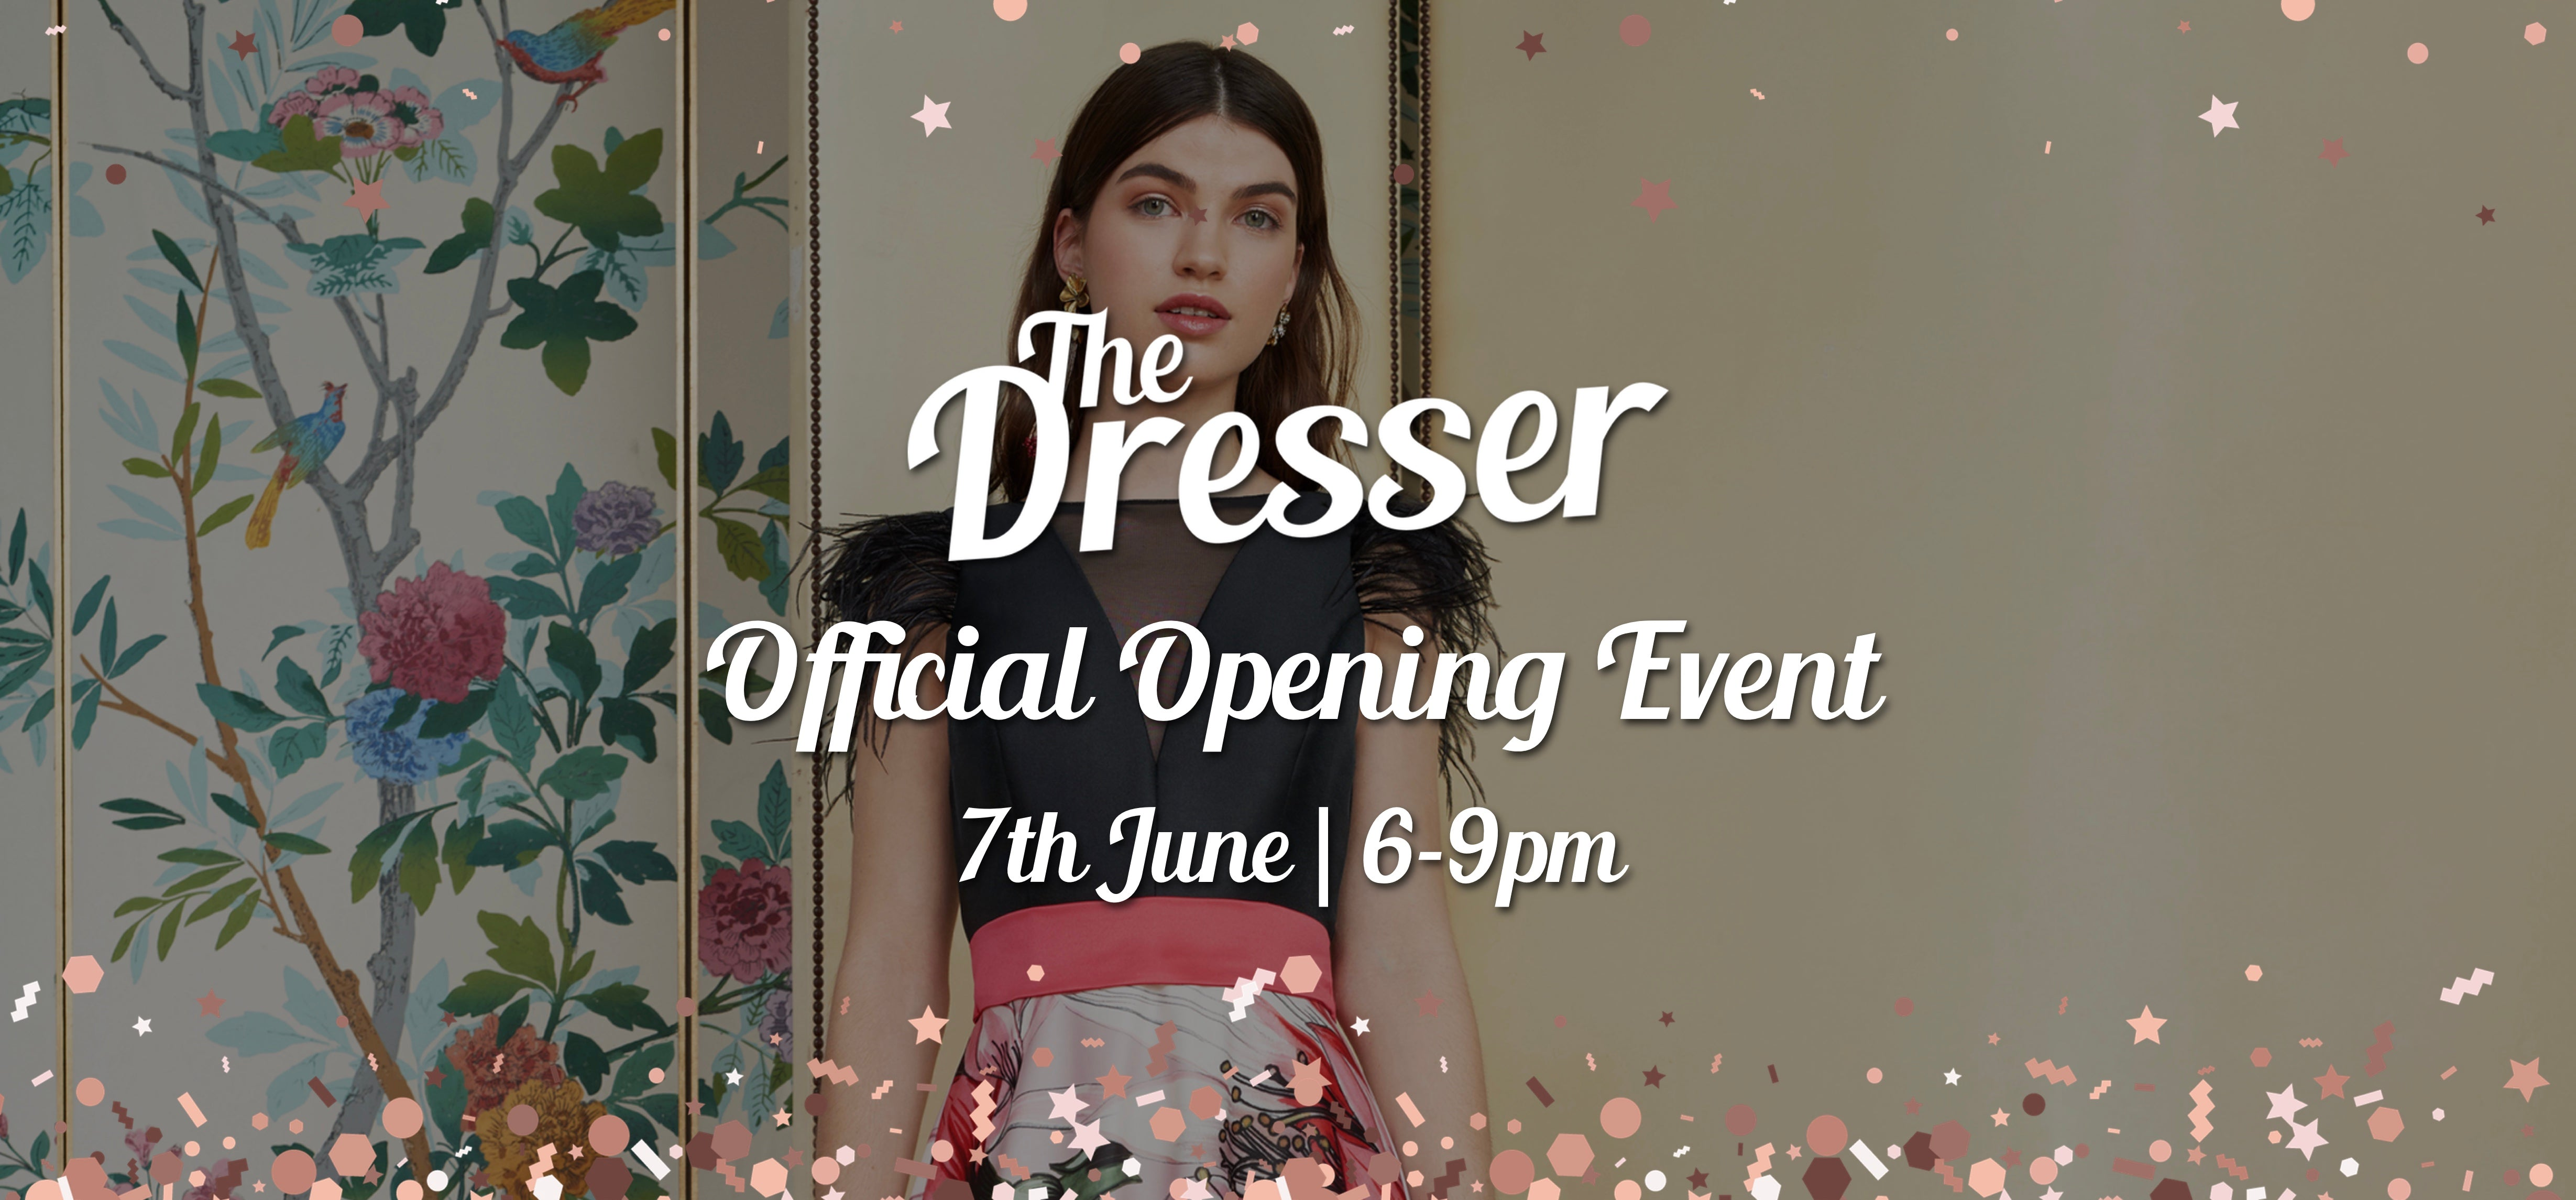 Official Opening Event | The Dresser Boutique Banbridge